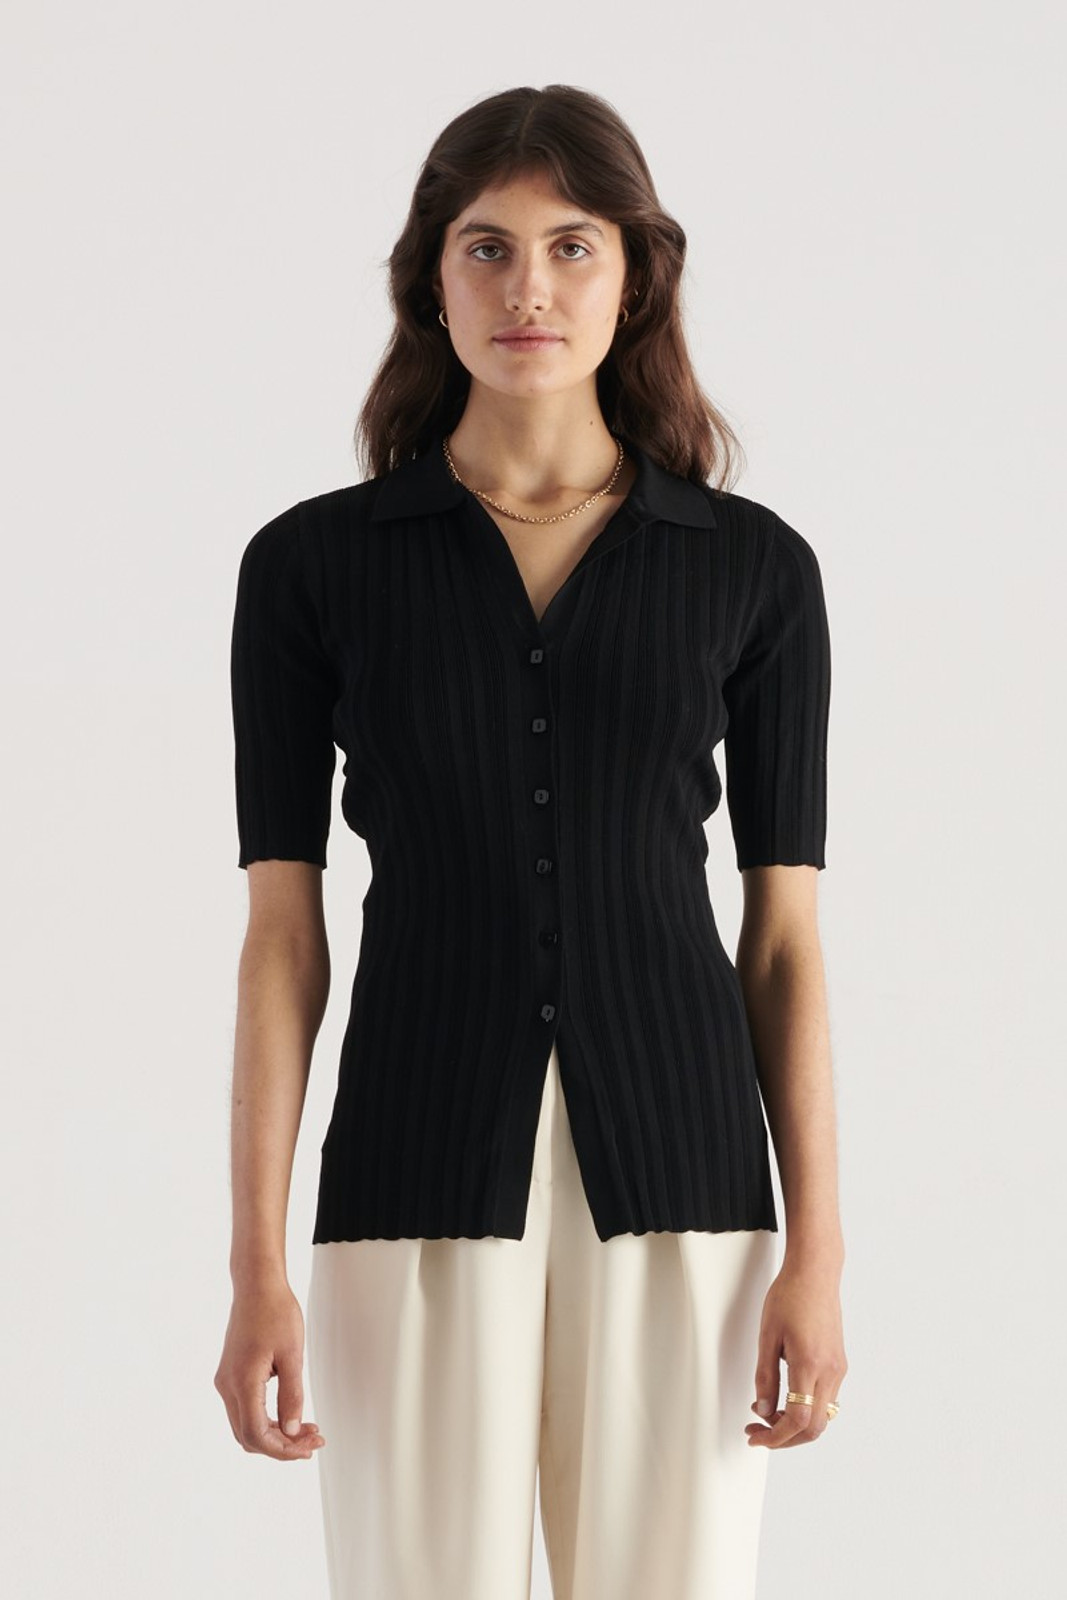 Elka Collective WOMENS Black Melody Knit 0